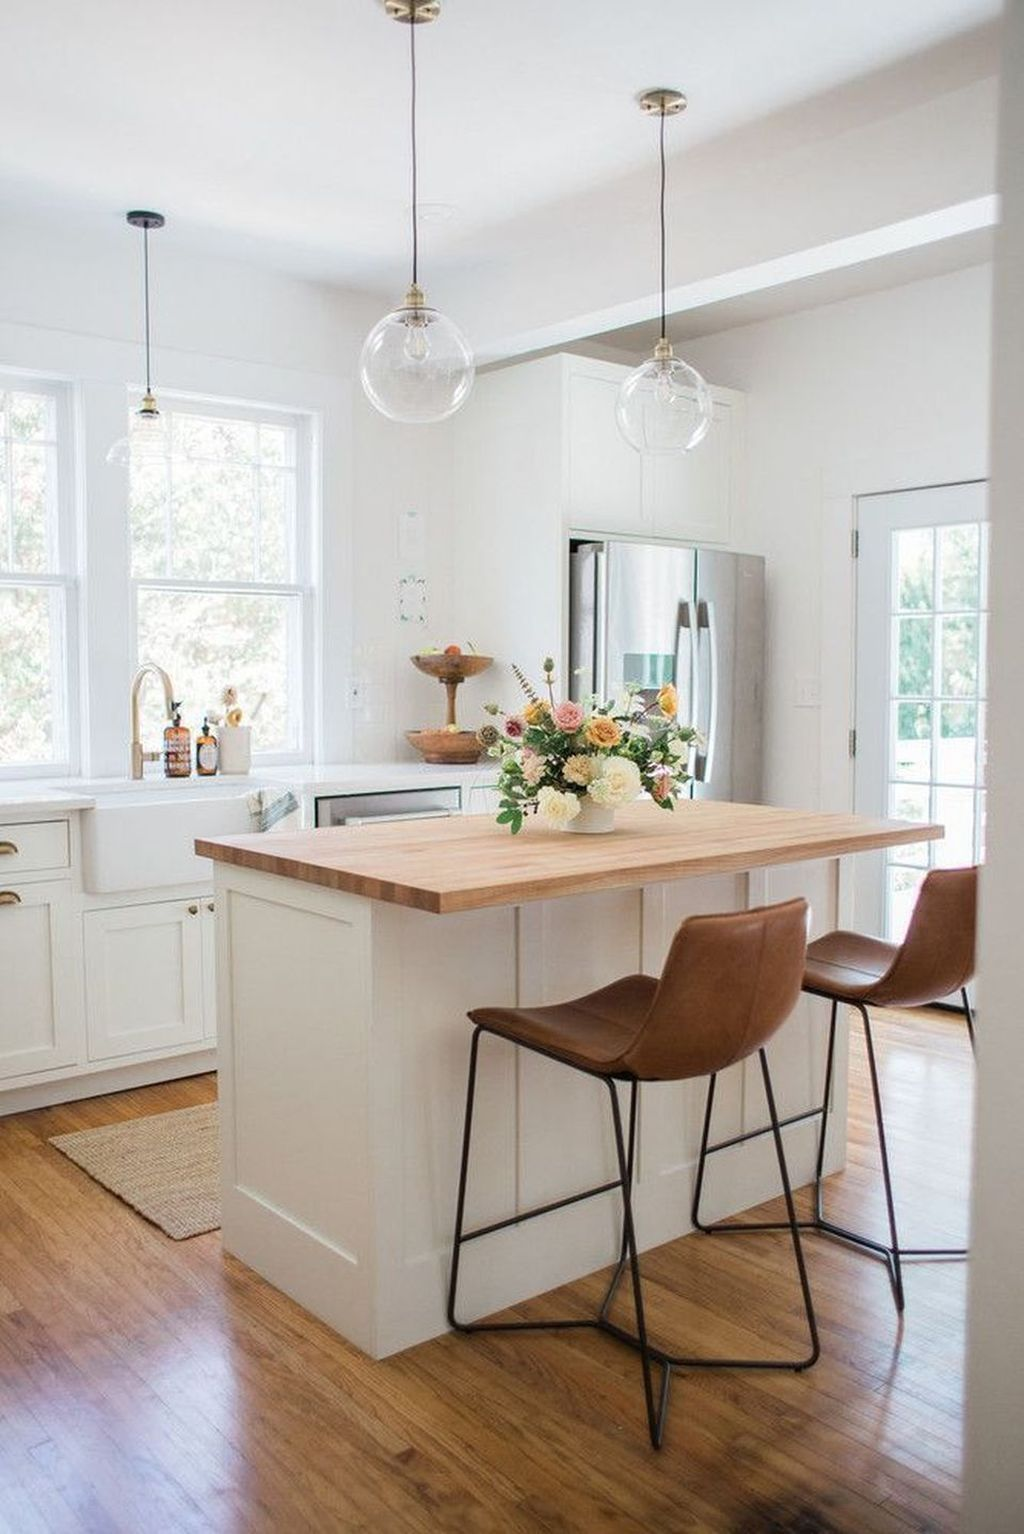 28 Simply Kitchen Island Ideas For Your